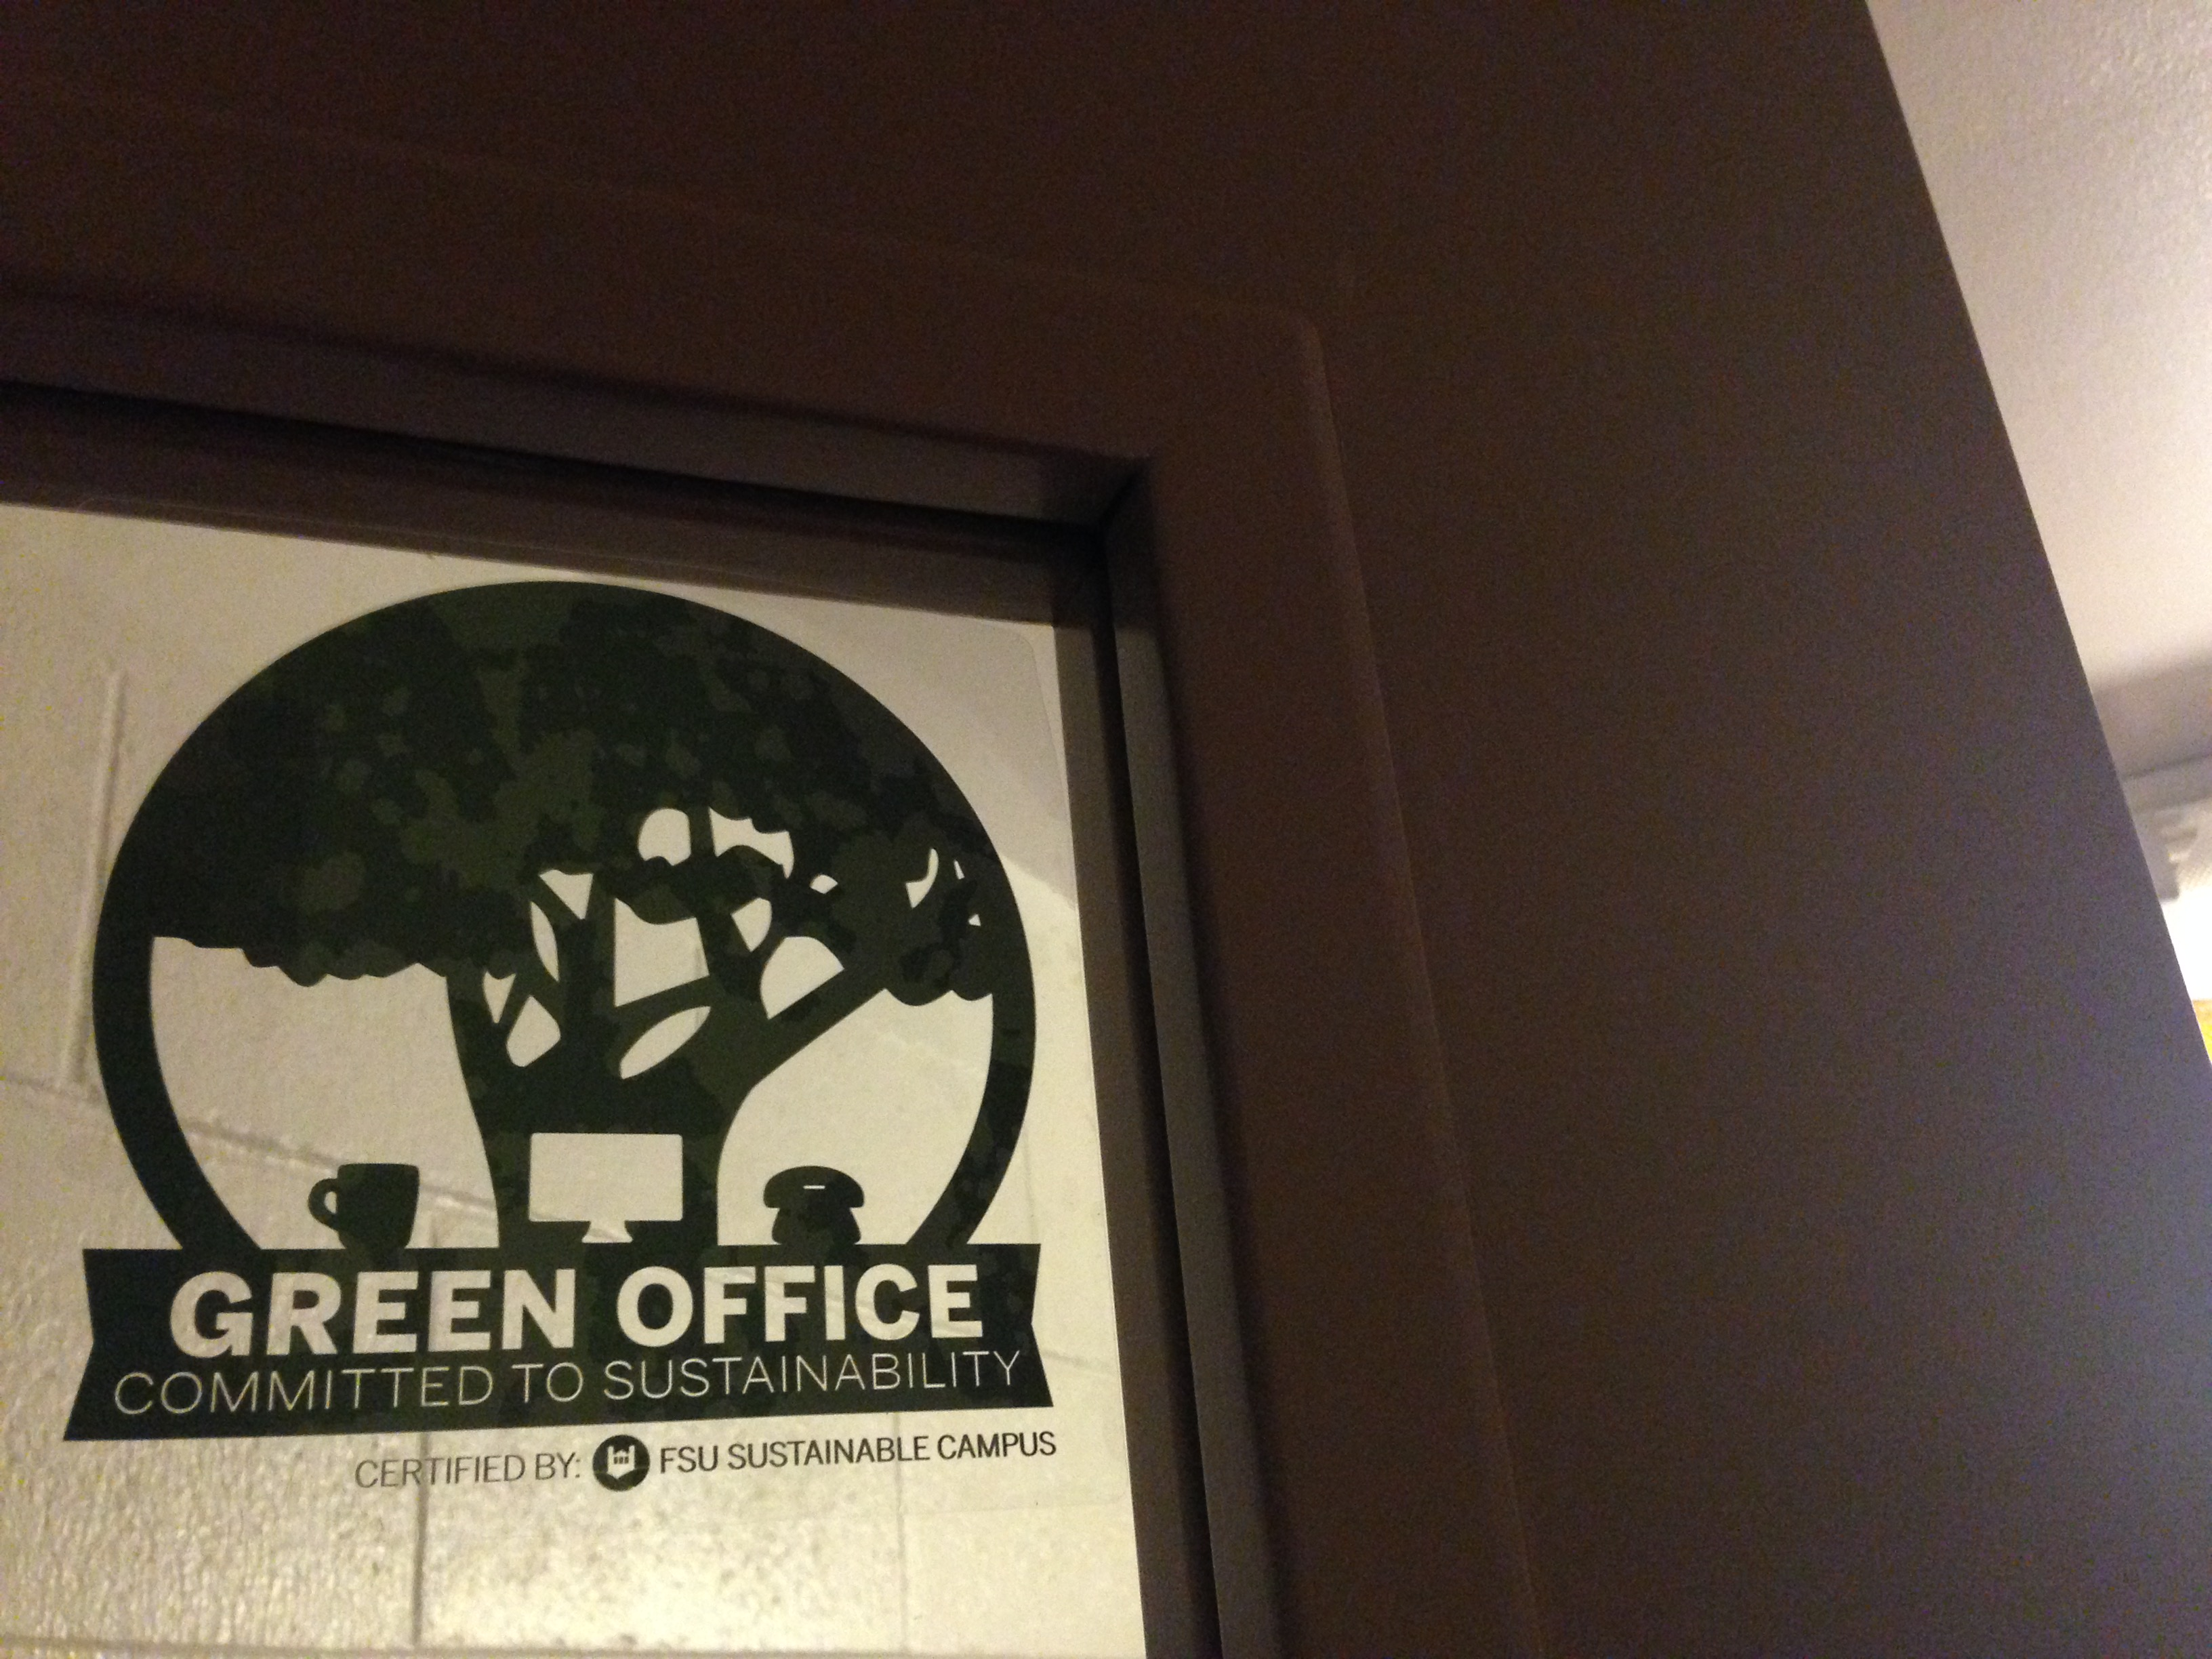 GreenOfficeDecal.JPG